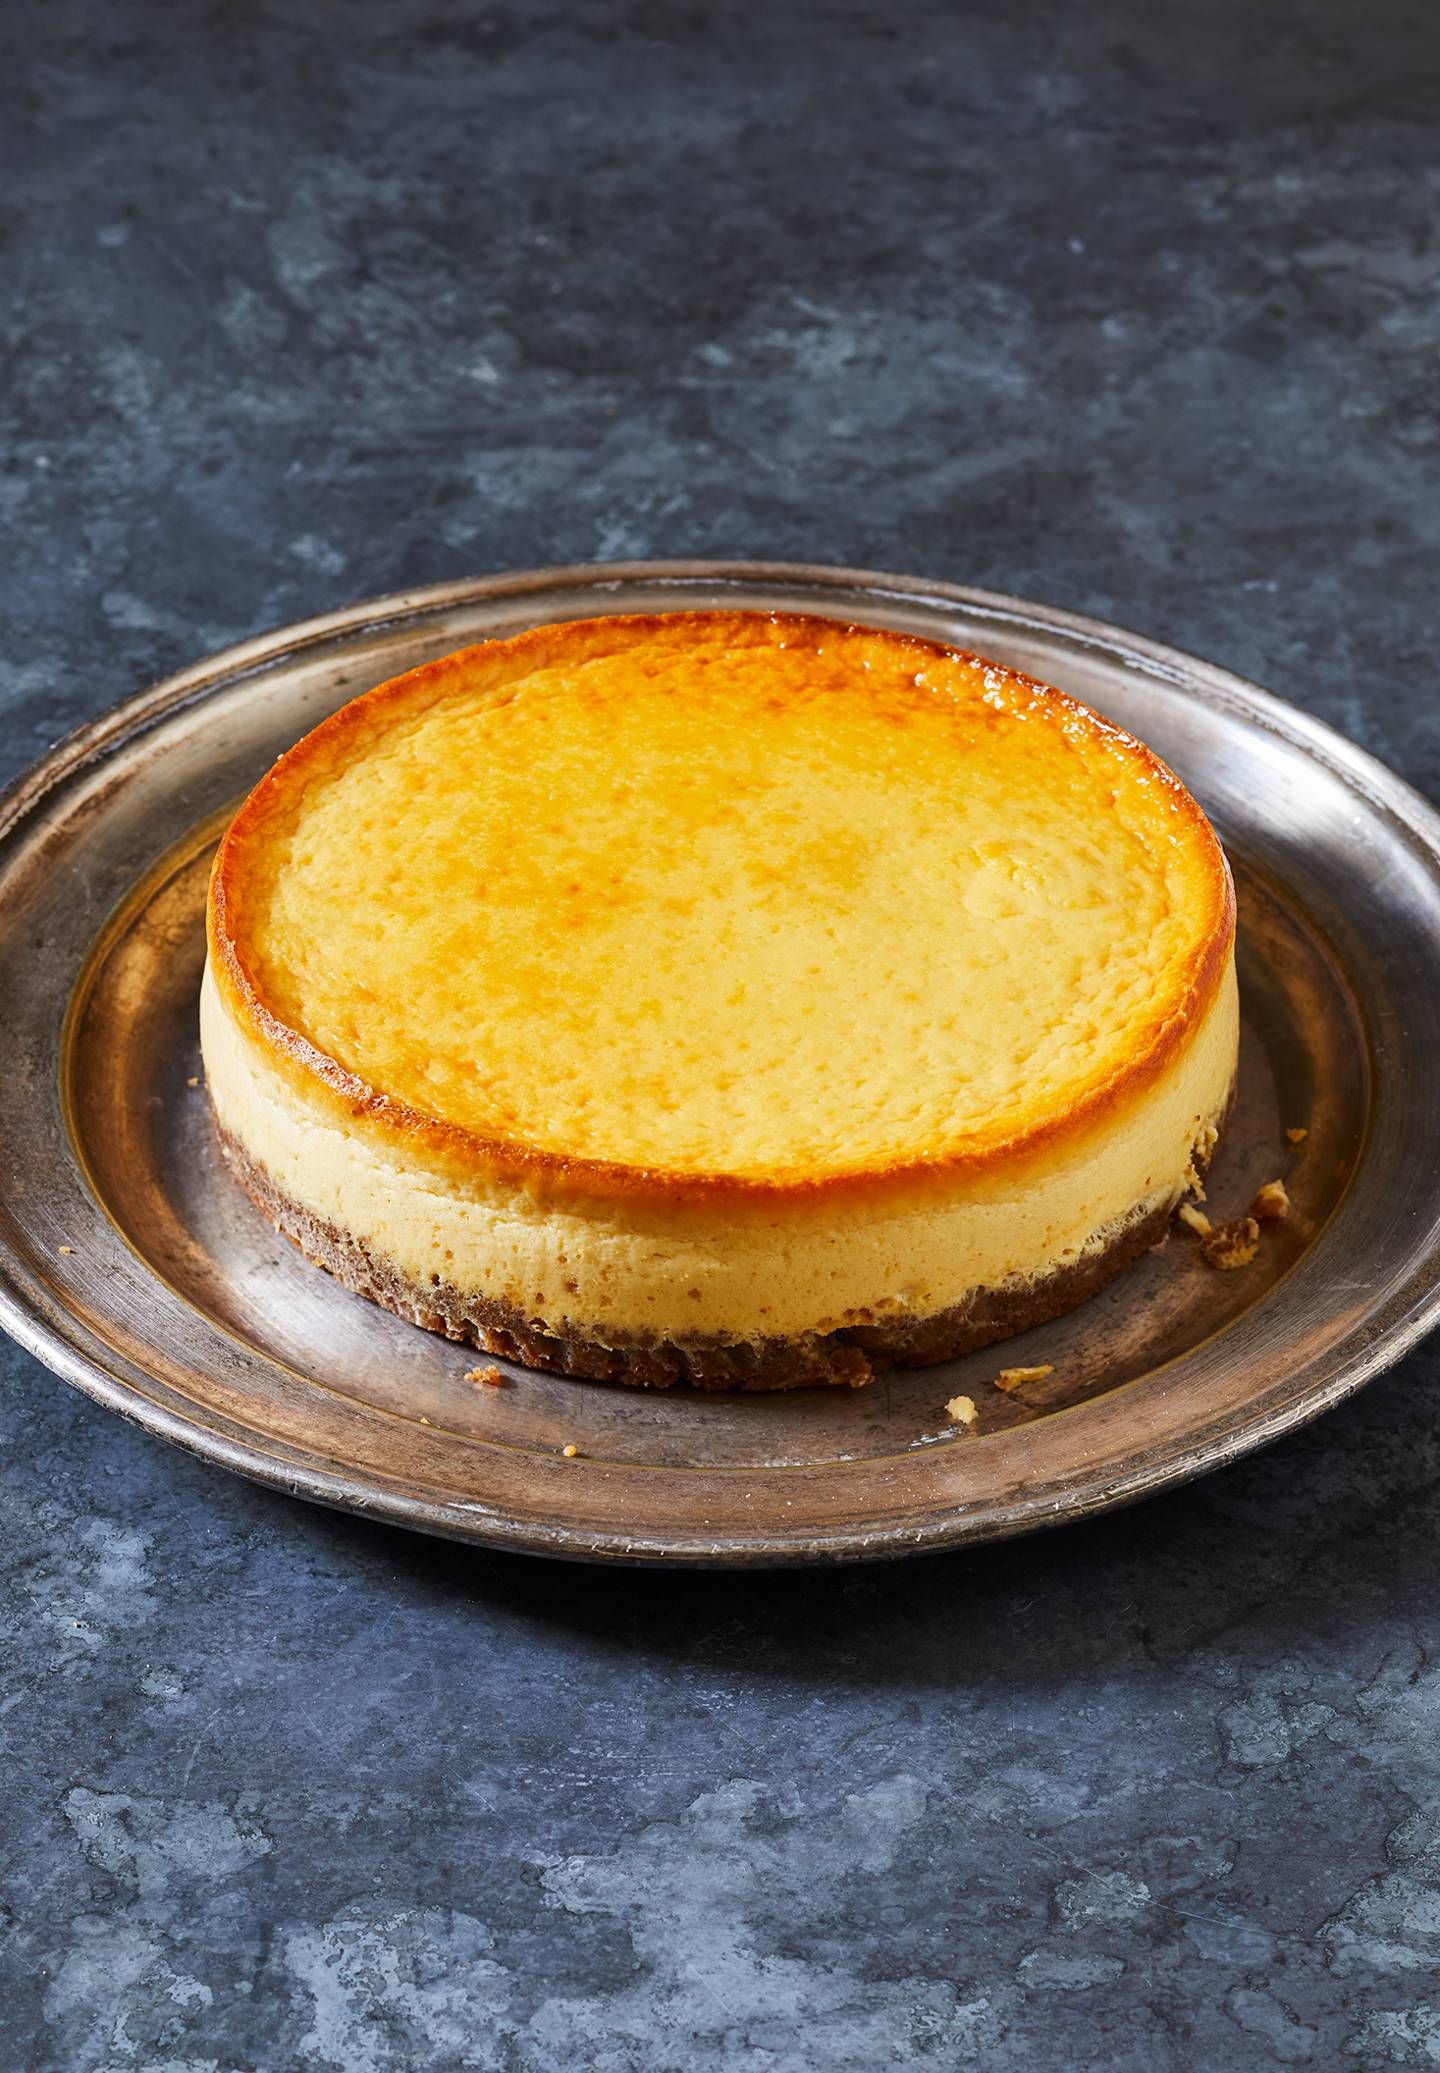 Blanche Vaughan's recipe for yuzu cheesecake